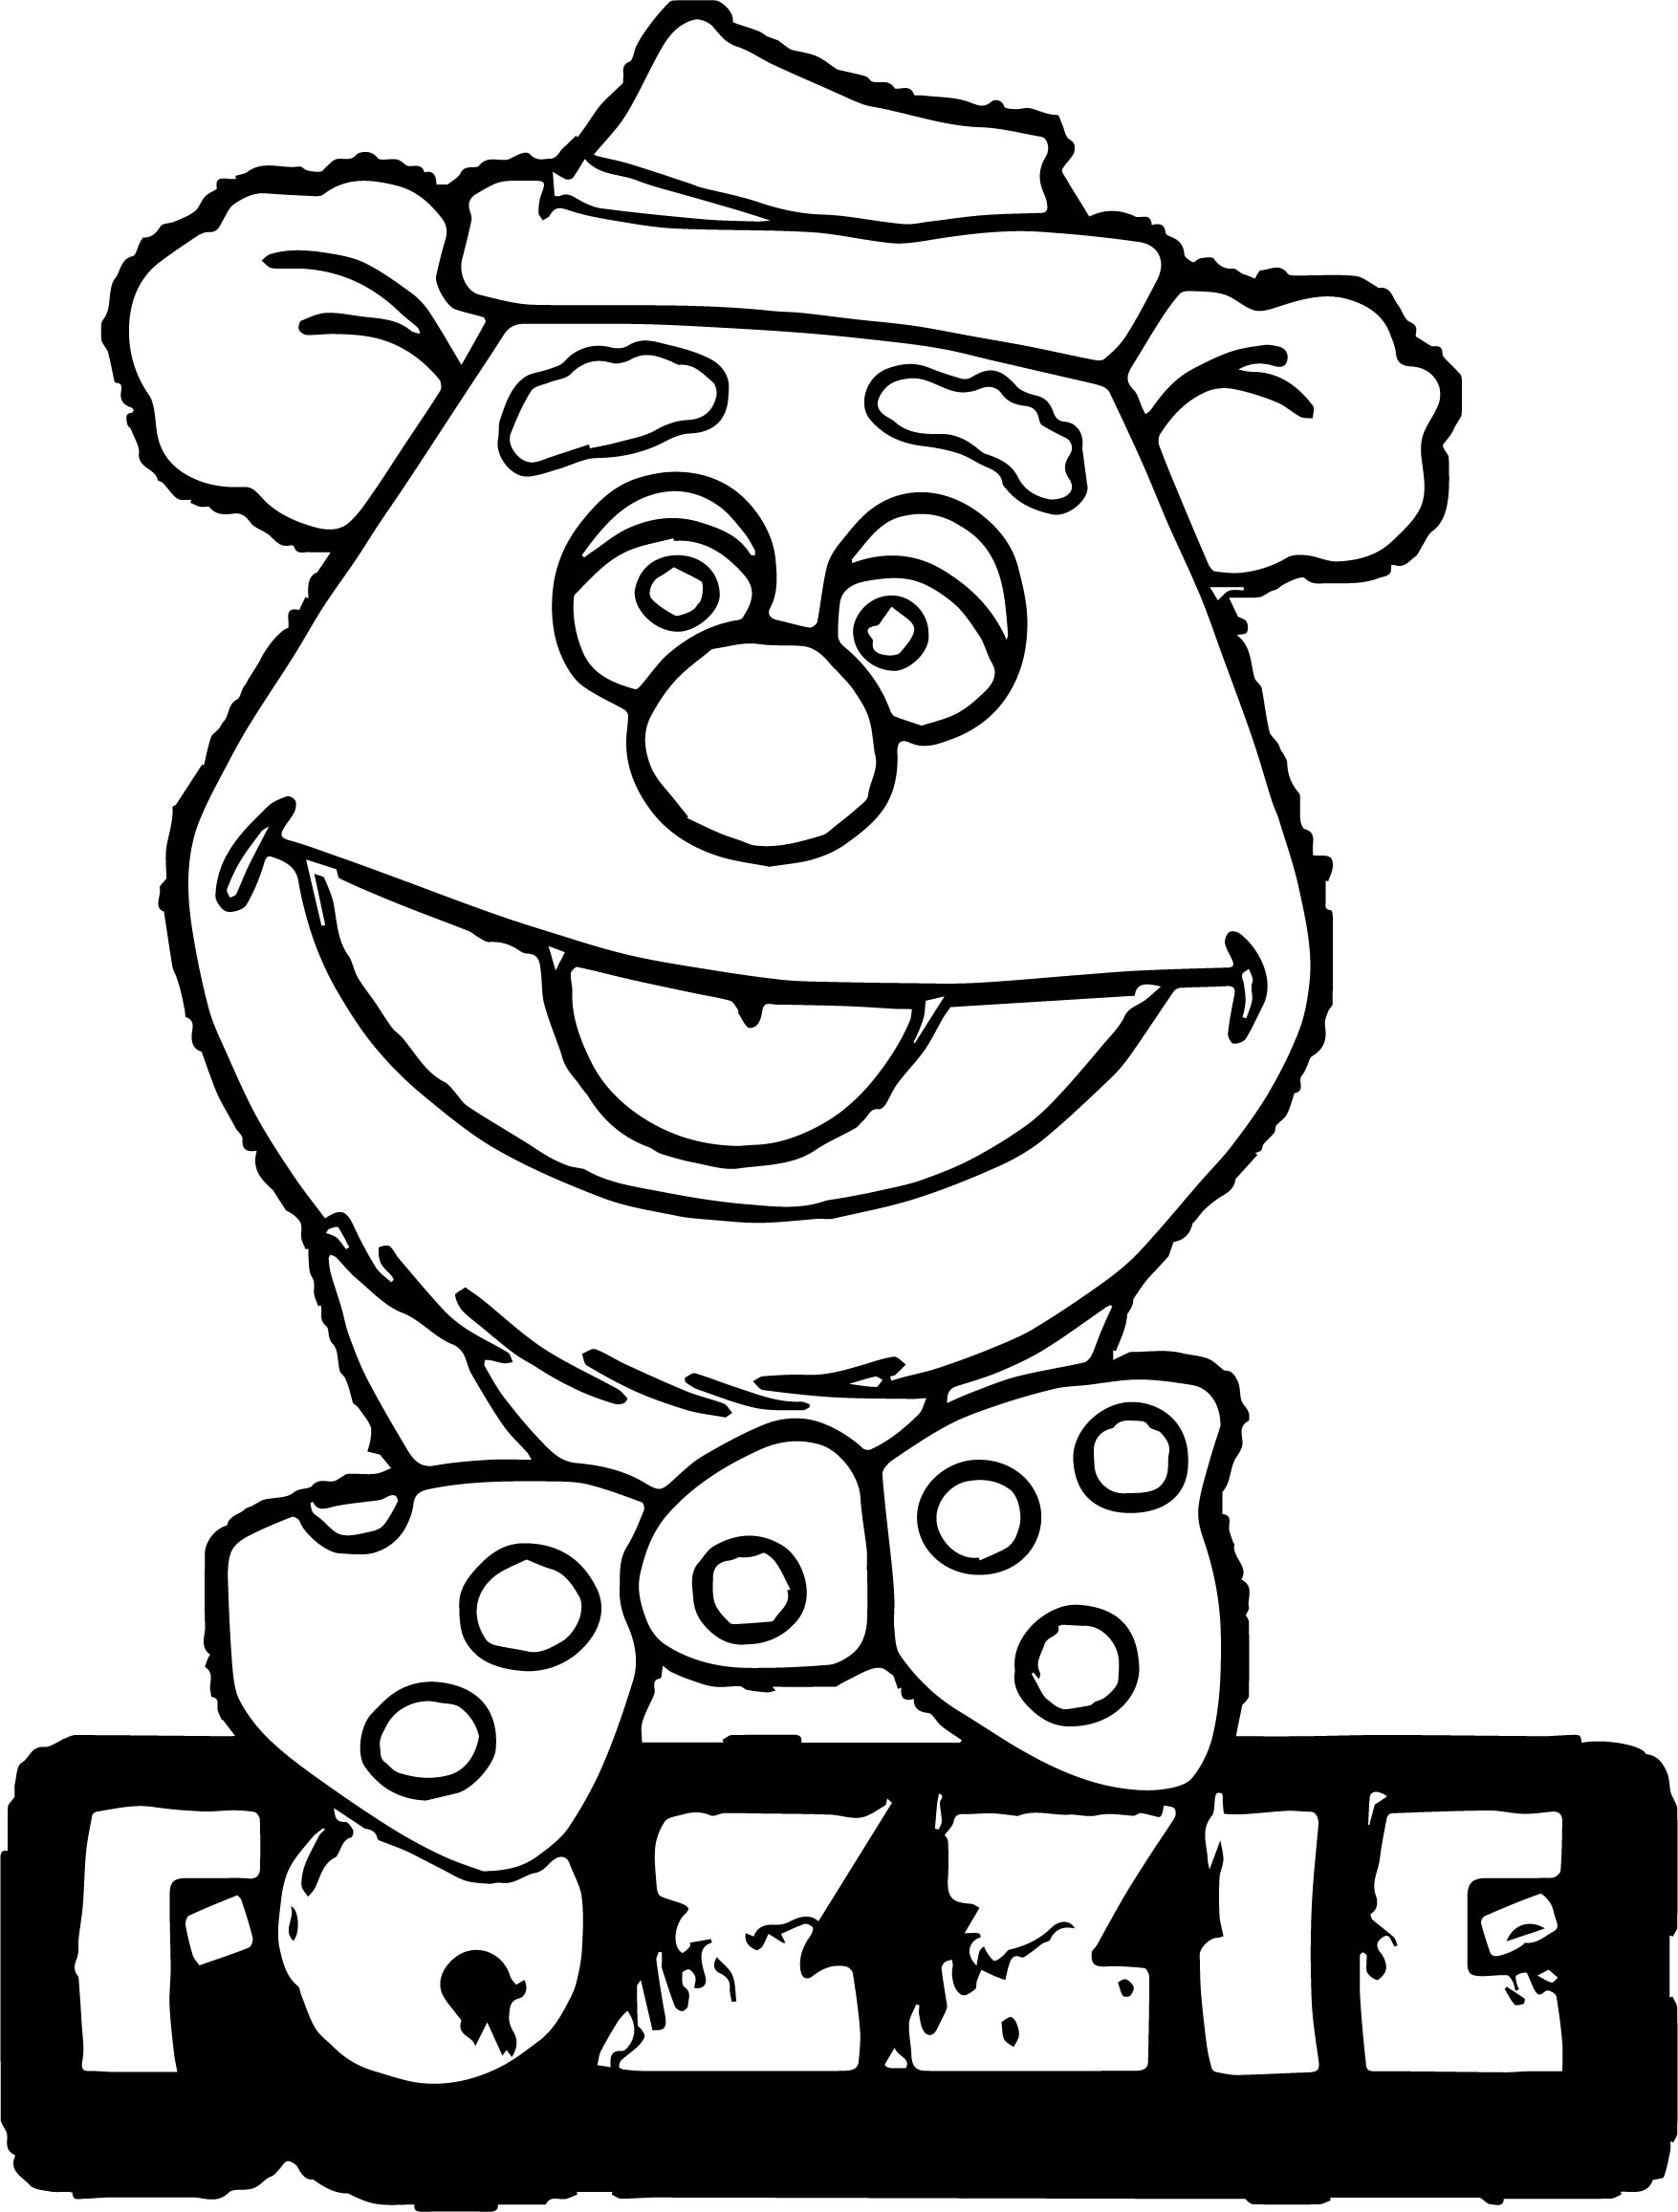 fozzie bear coloring pages drawing head of fozzie bear the muppets coloring pages coloring bear pages fozzie